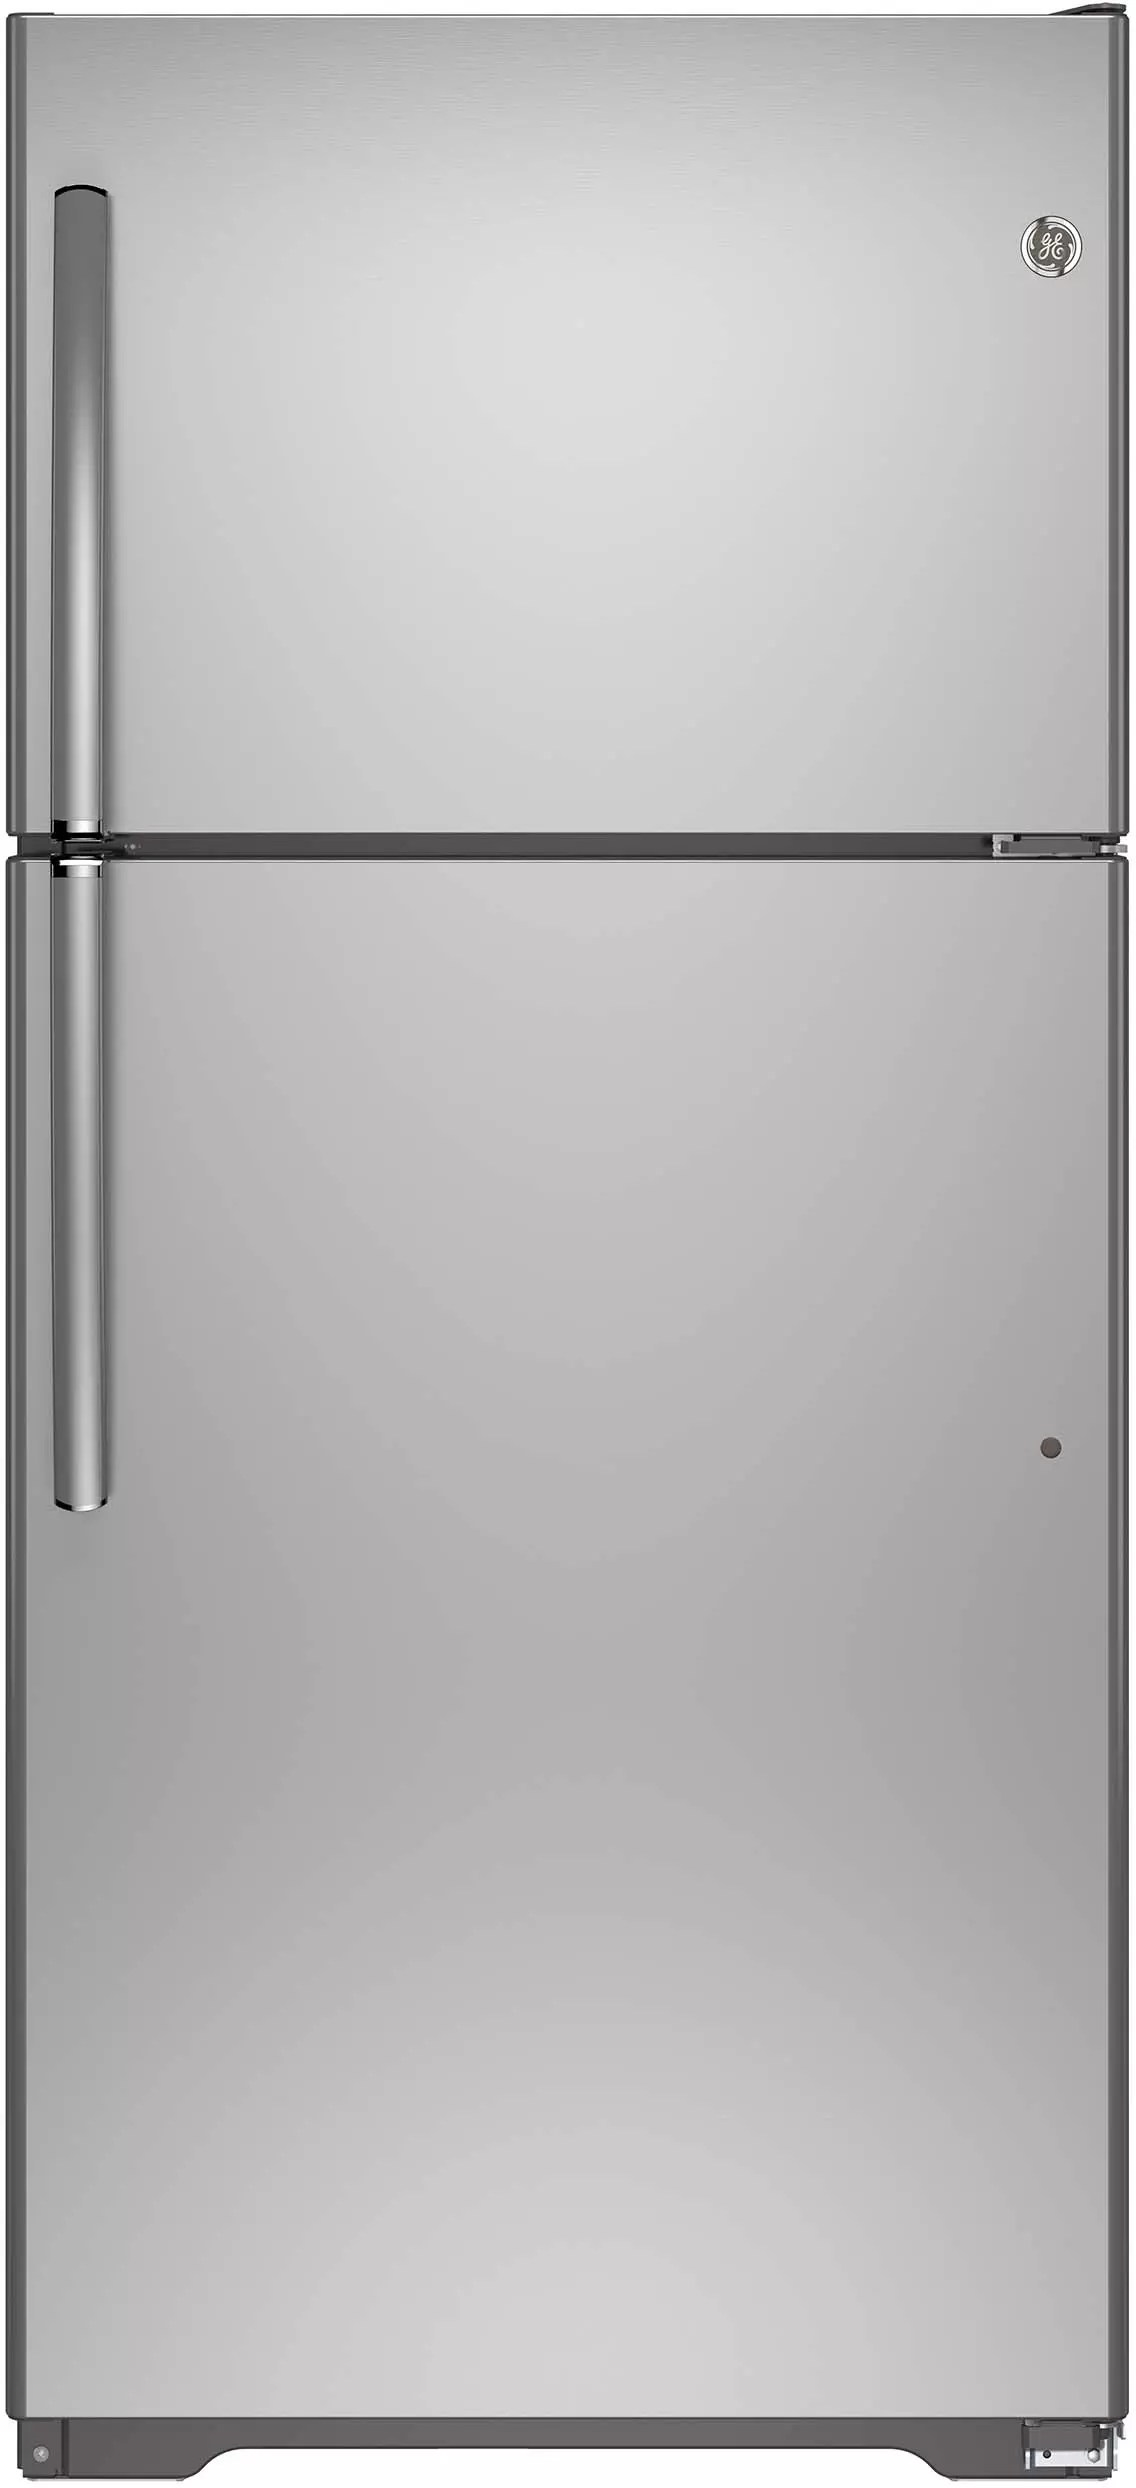 GE GIE18ISHSS 30 Inch Top Freezer Refrigerator With 182 Cu Ft Capacity 3 Adjustable Glass